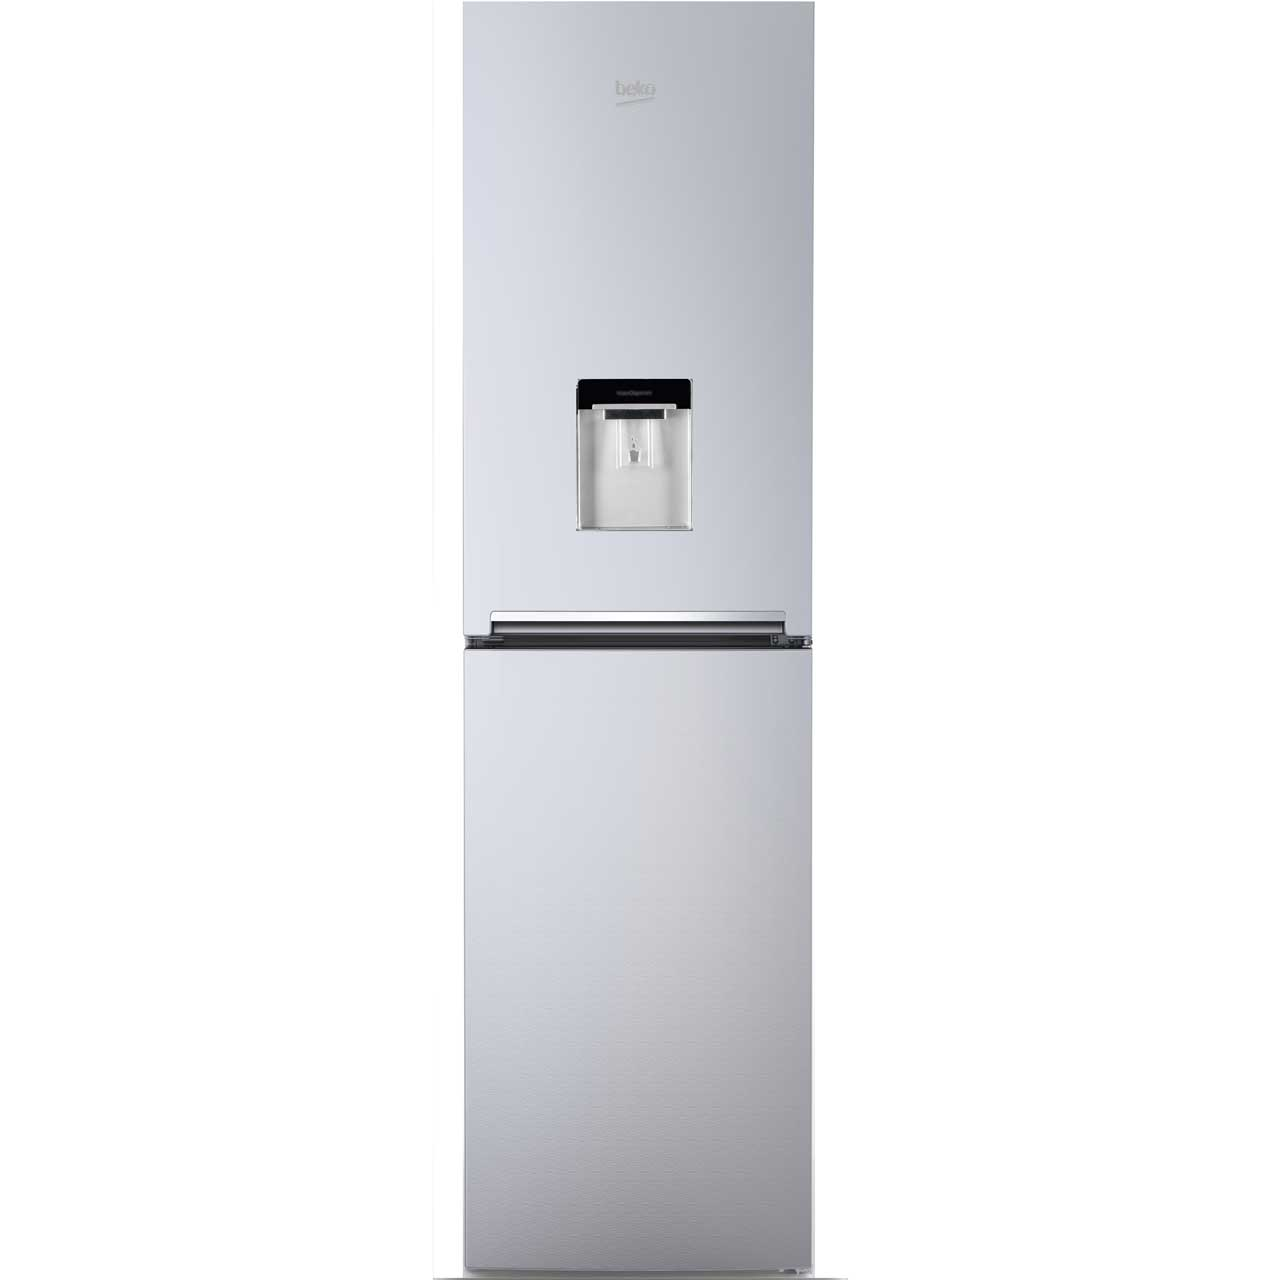 Beko CRFG1582DS Free Standing Fridge Freezer Frost Free in Silver